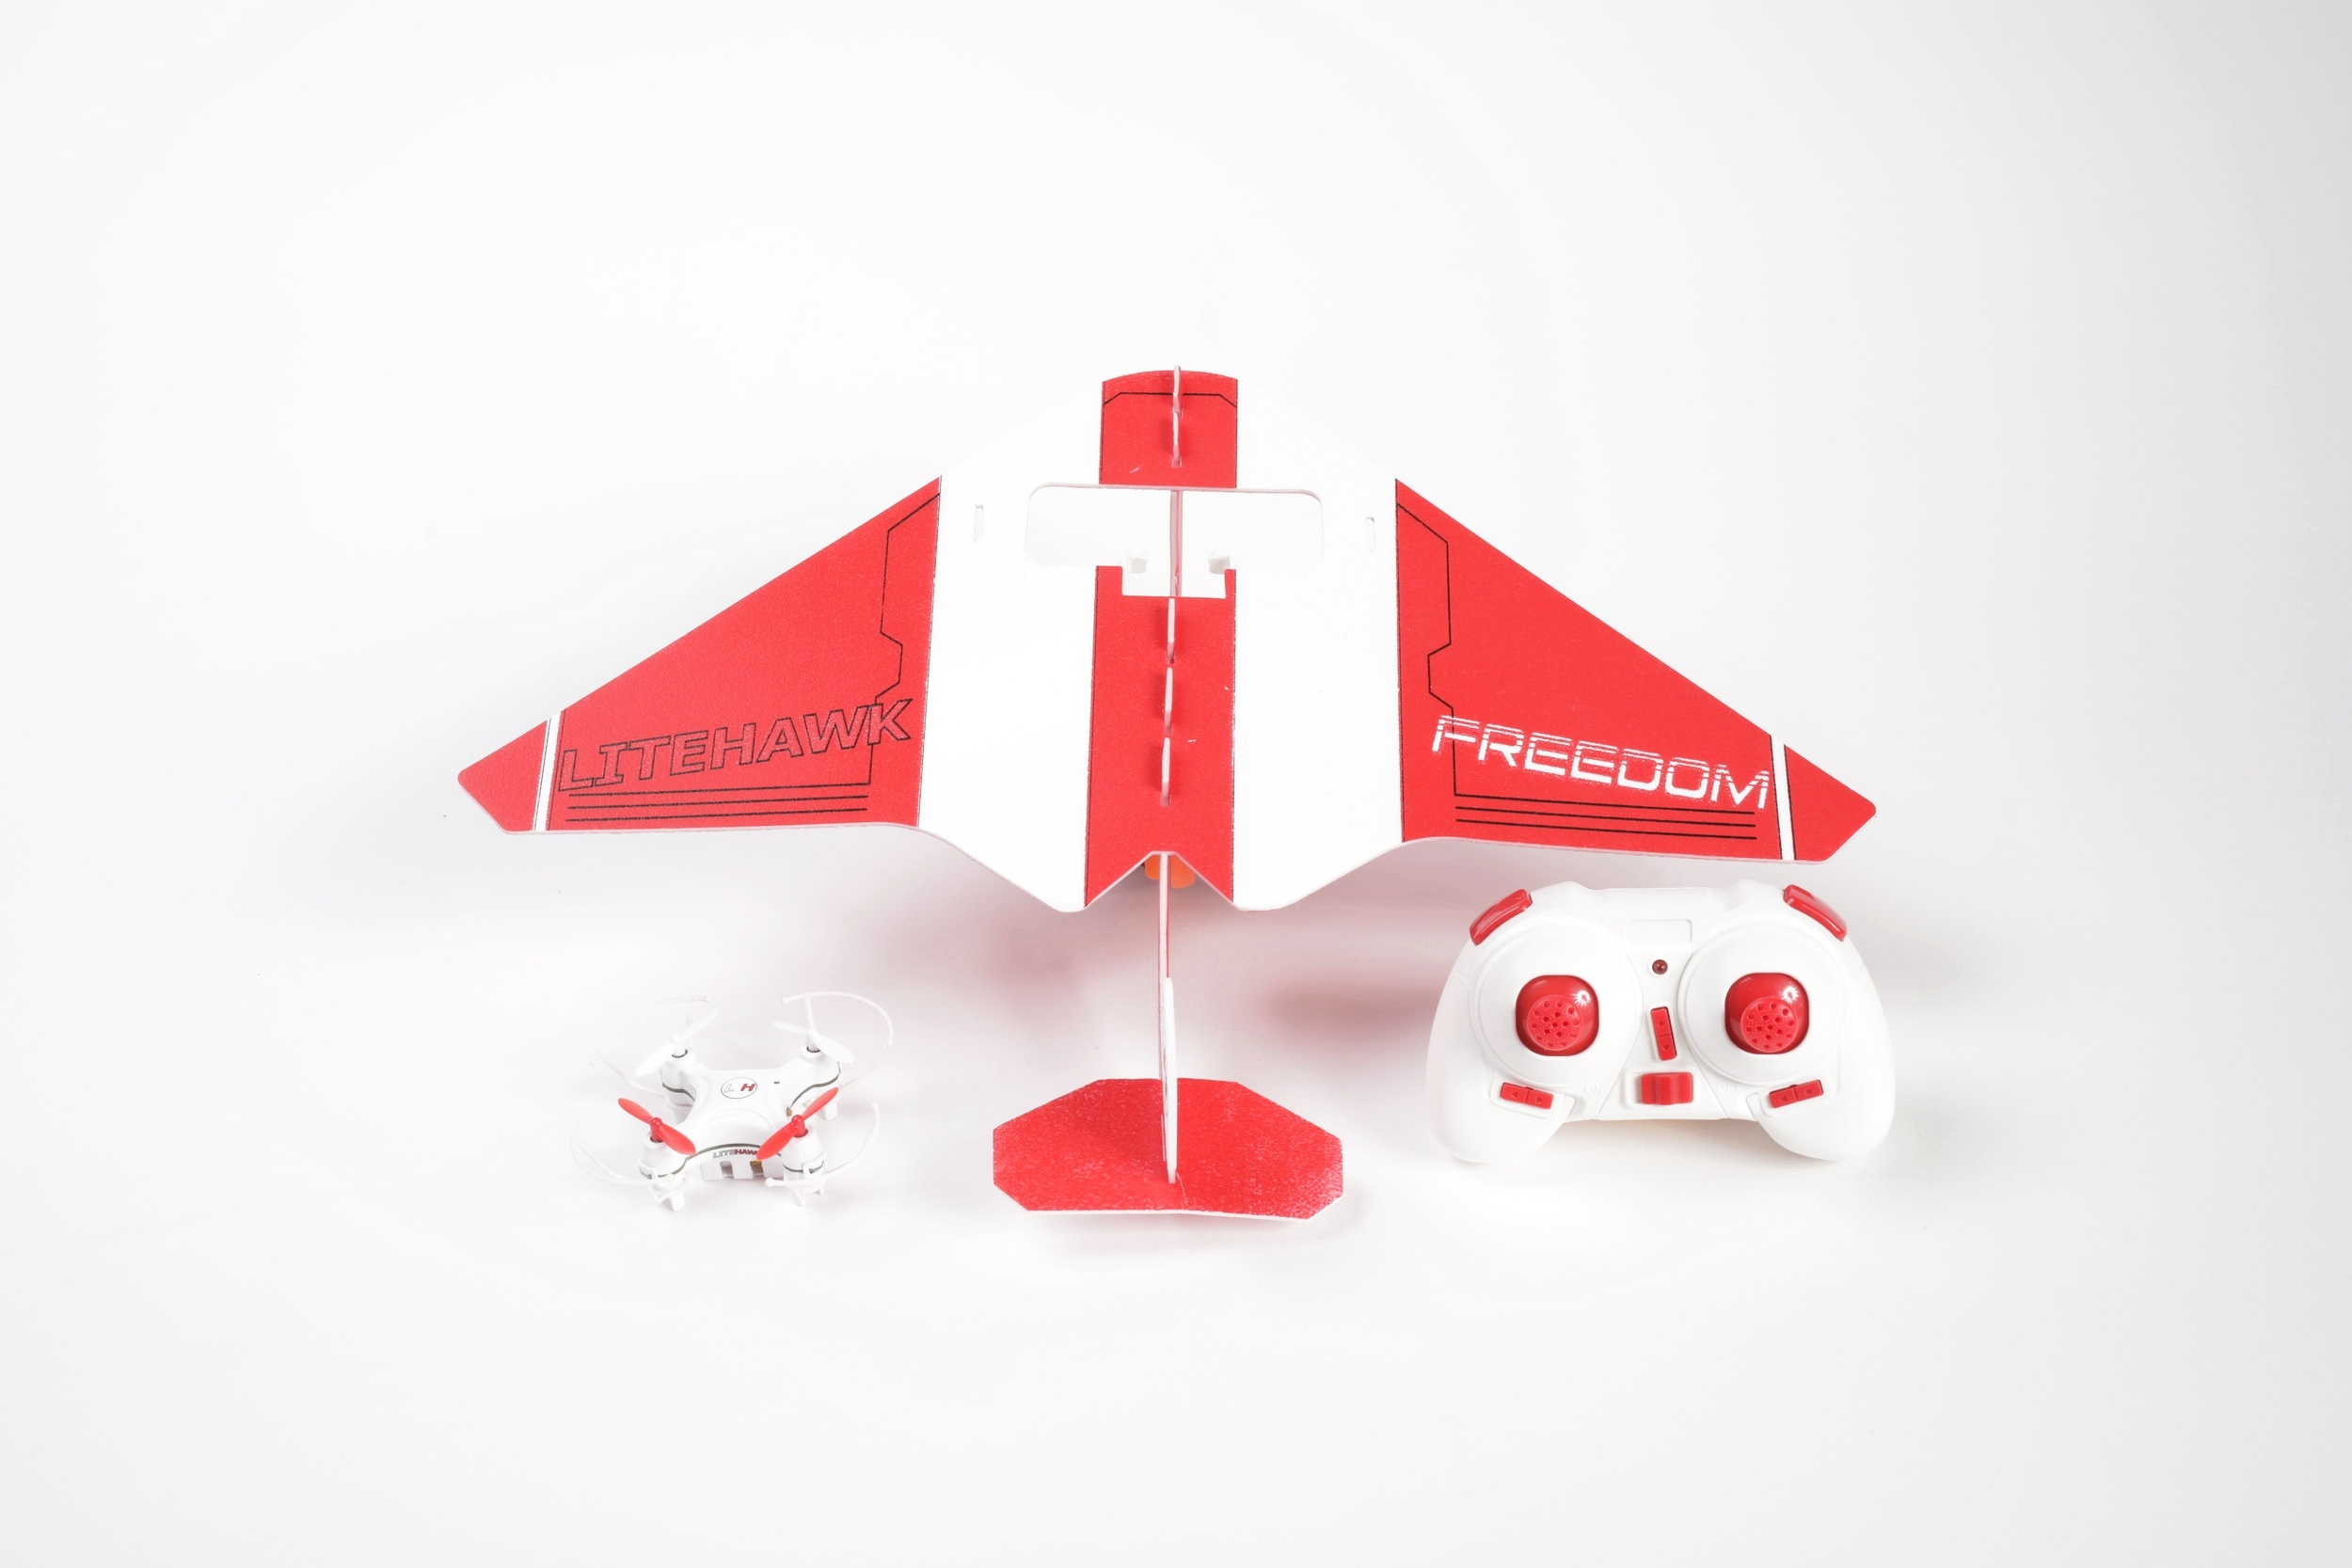 All Inclusive and Ready to Run! - The LiteHawk Freedom comes with everything you need to enjoy full flight in both drone and plane format. Drone, remote, plane wings, charging peripherals, and instruction manual included!